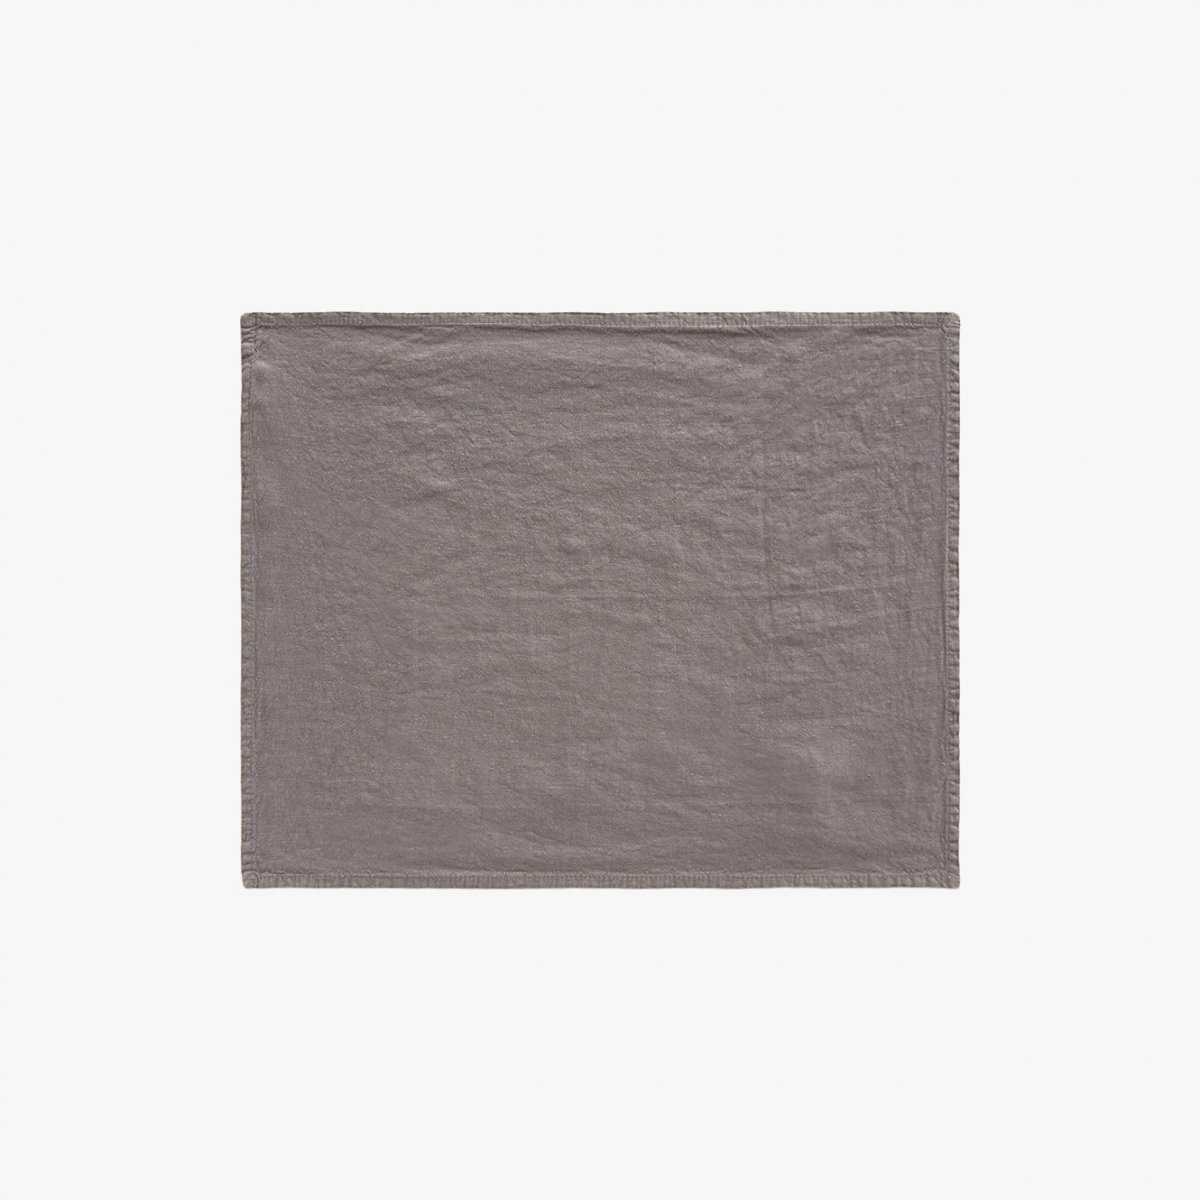 Simple Linen Placemat, dark gray.